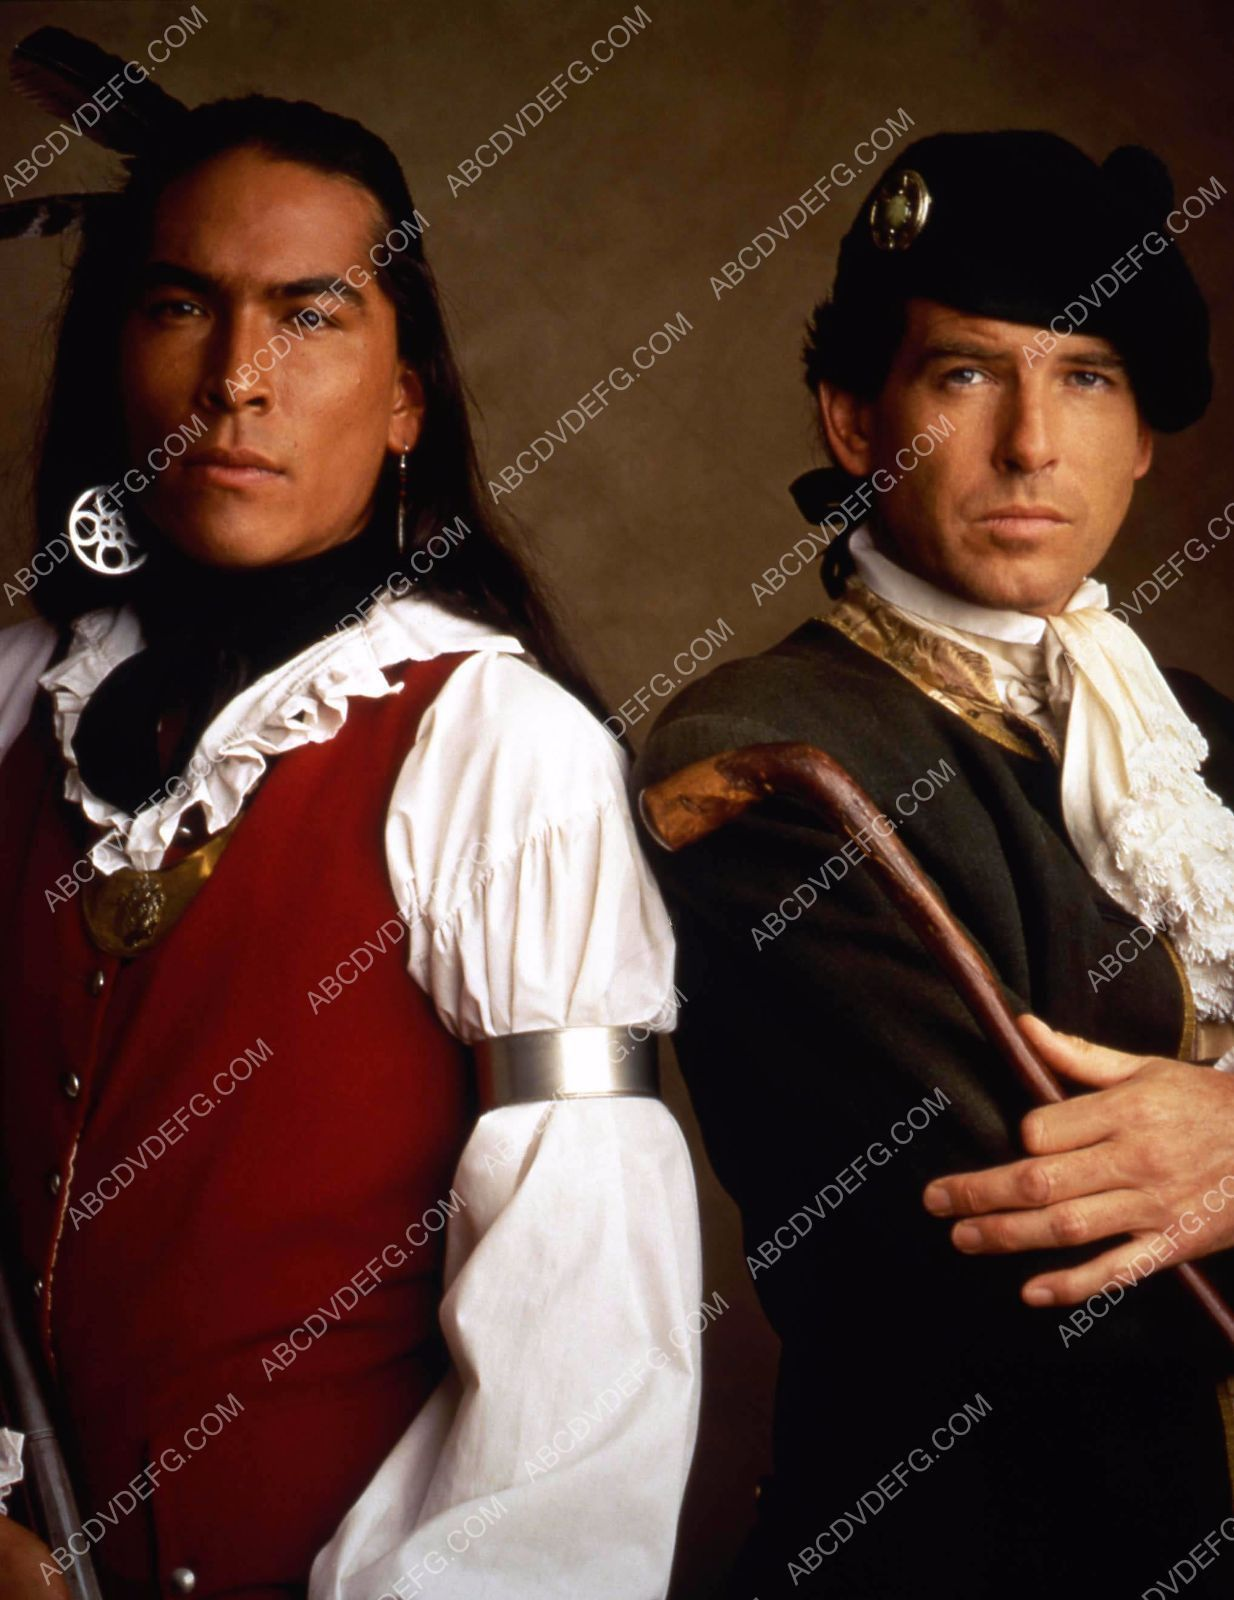 Eric Schweig Pierce Brosnan Tv Broken Chain 35m 1205 Native American Actors Native American Models Eric Schweig Knowing that space aliens have more representation in the media than real native americans. eric schweig pierce brosnan tv broken